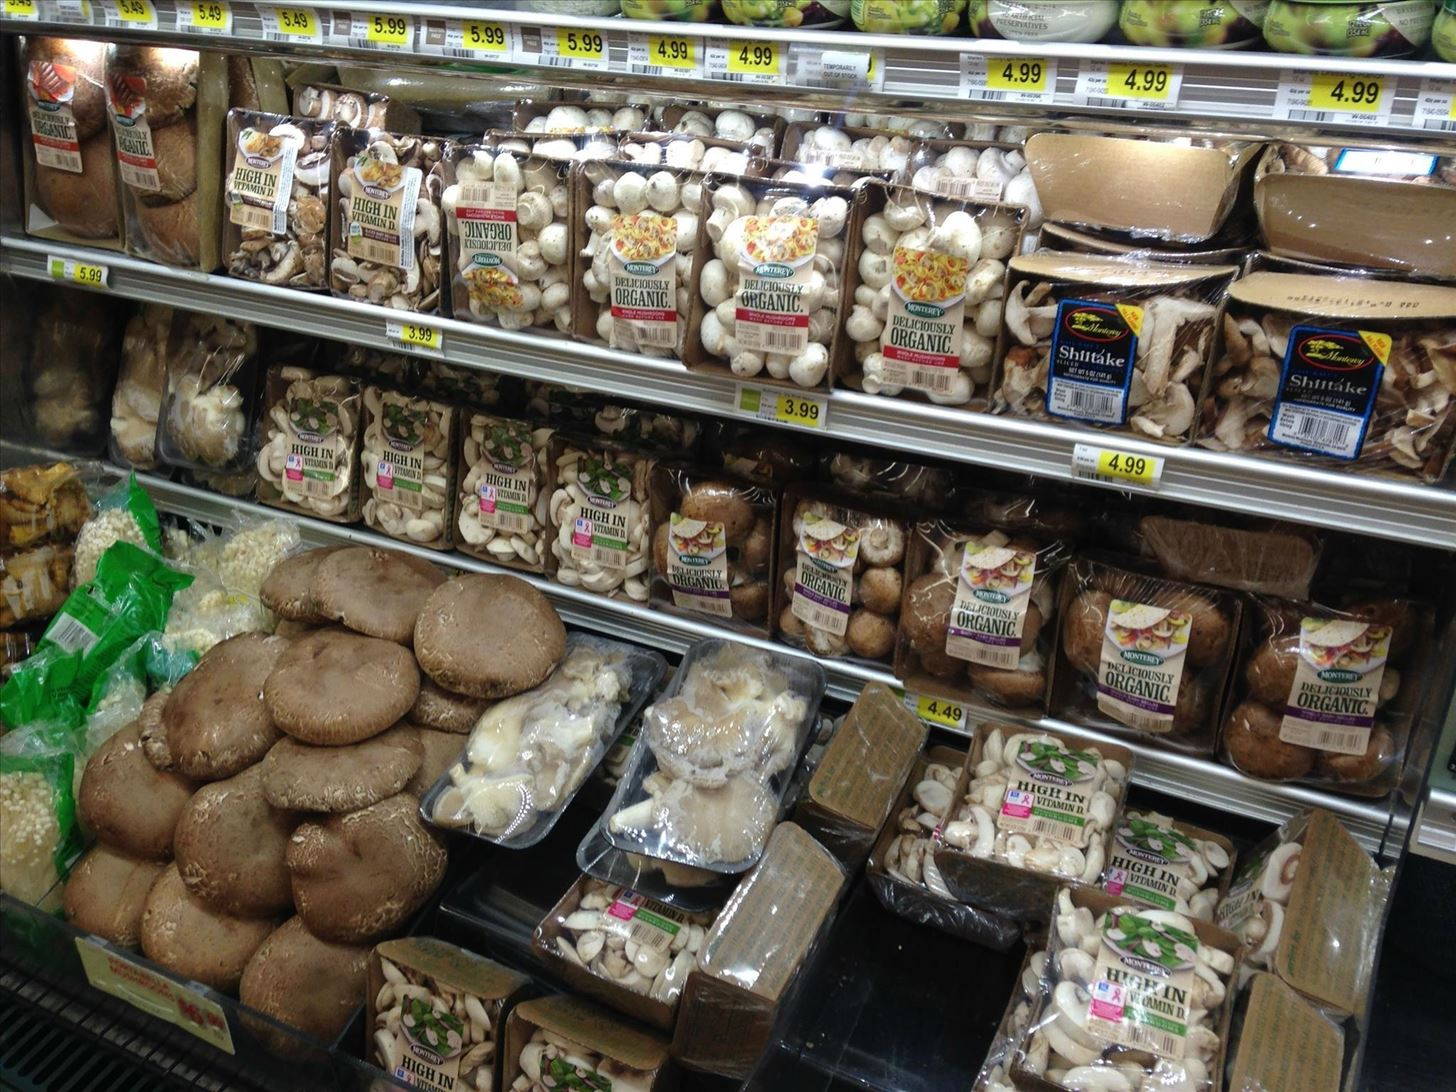 Ingredients 101: Selecting, Cleaning, & Storing Fresh Mushrooms